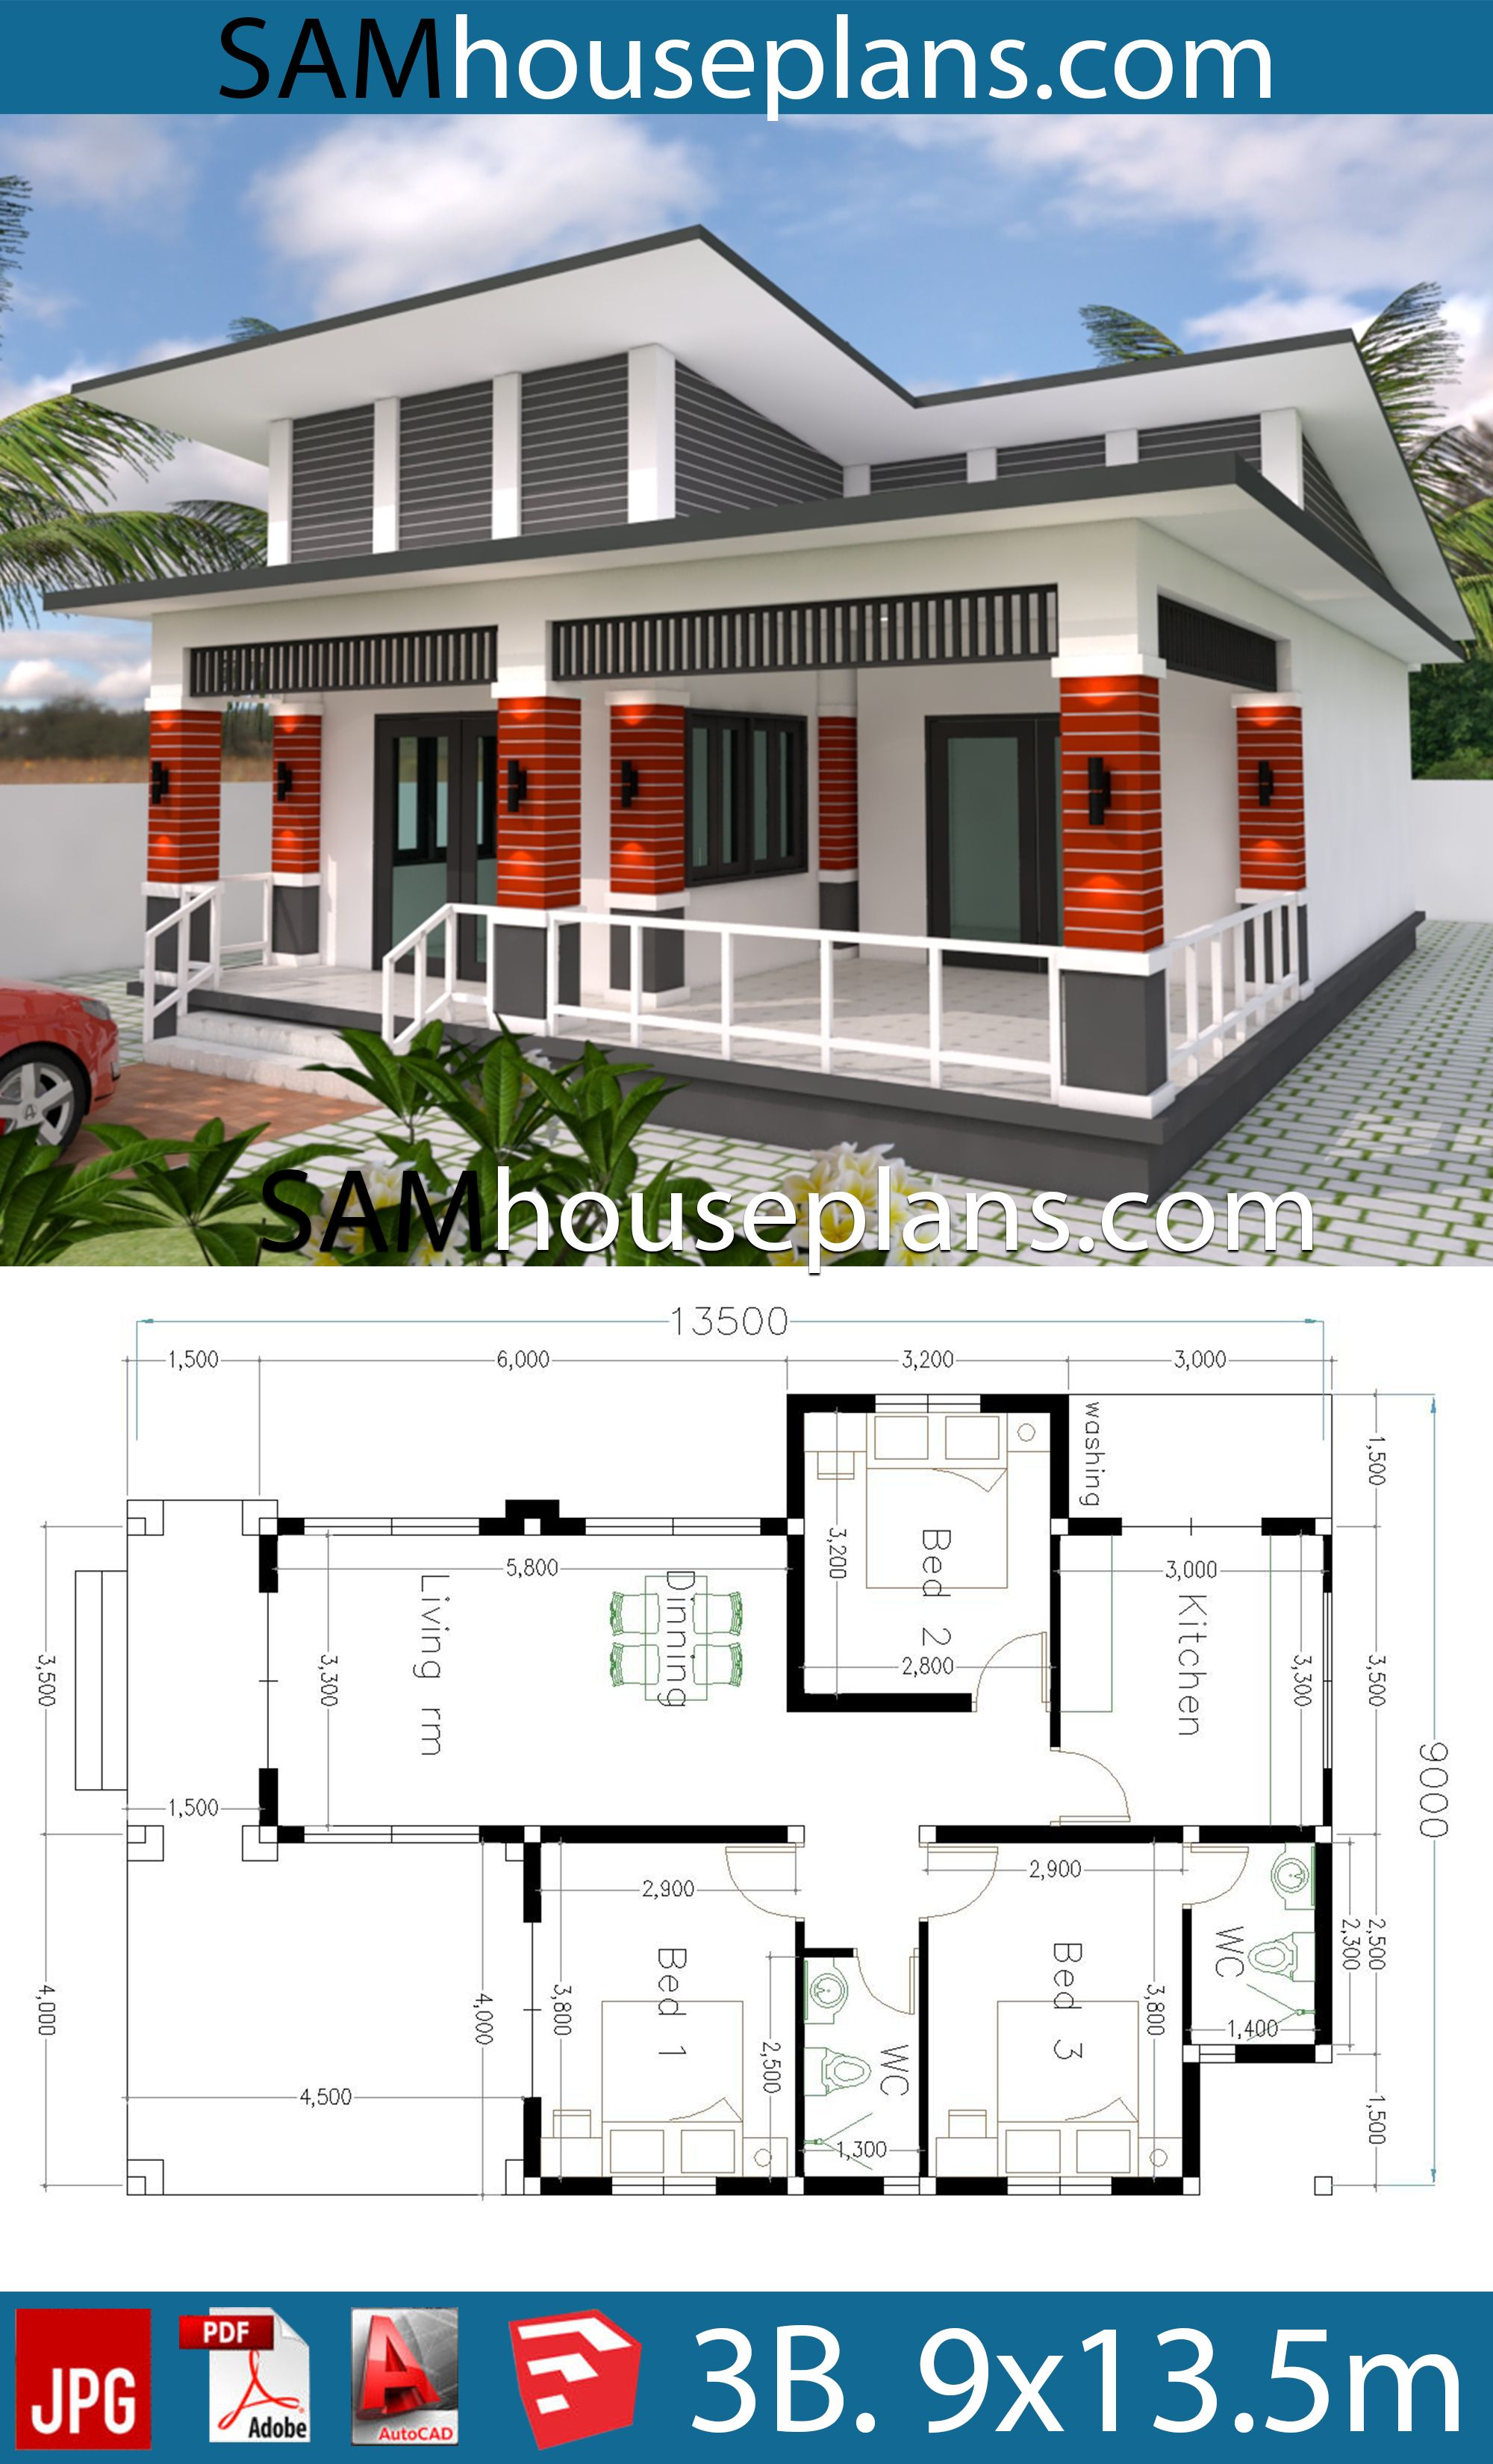 House Plans 9x13 5 With 3 Bedrooms House Plans Free Downloads Beautiful House Plans House Blueprints Affordable House Plans